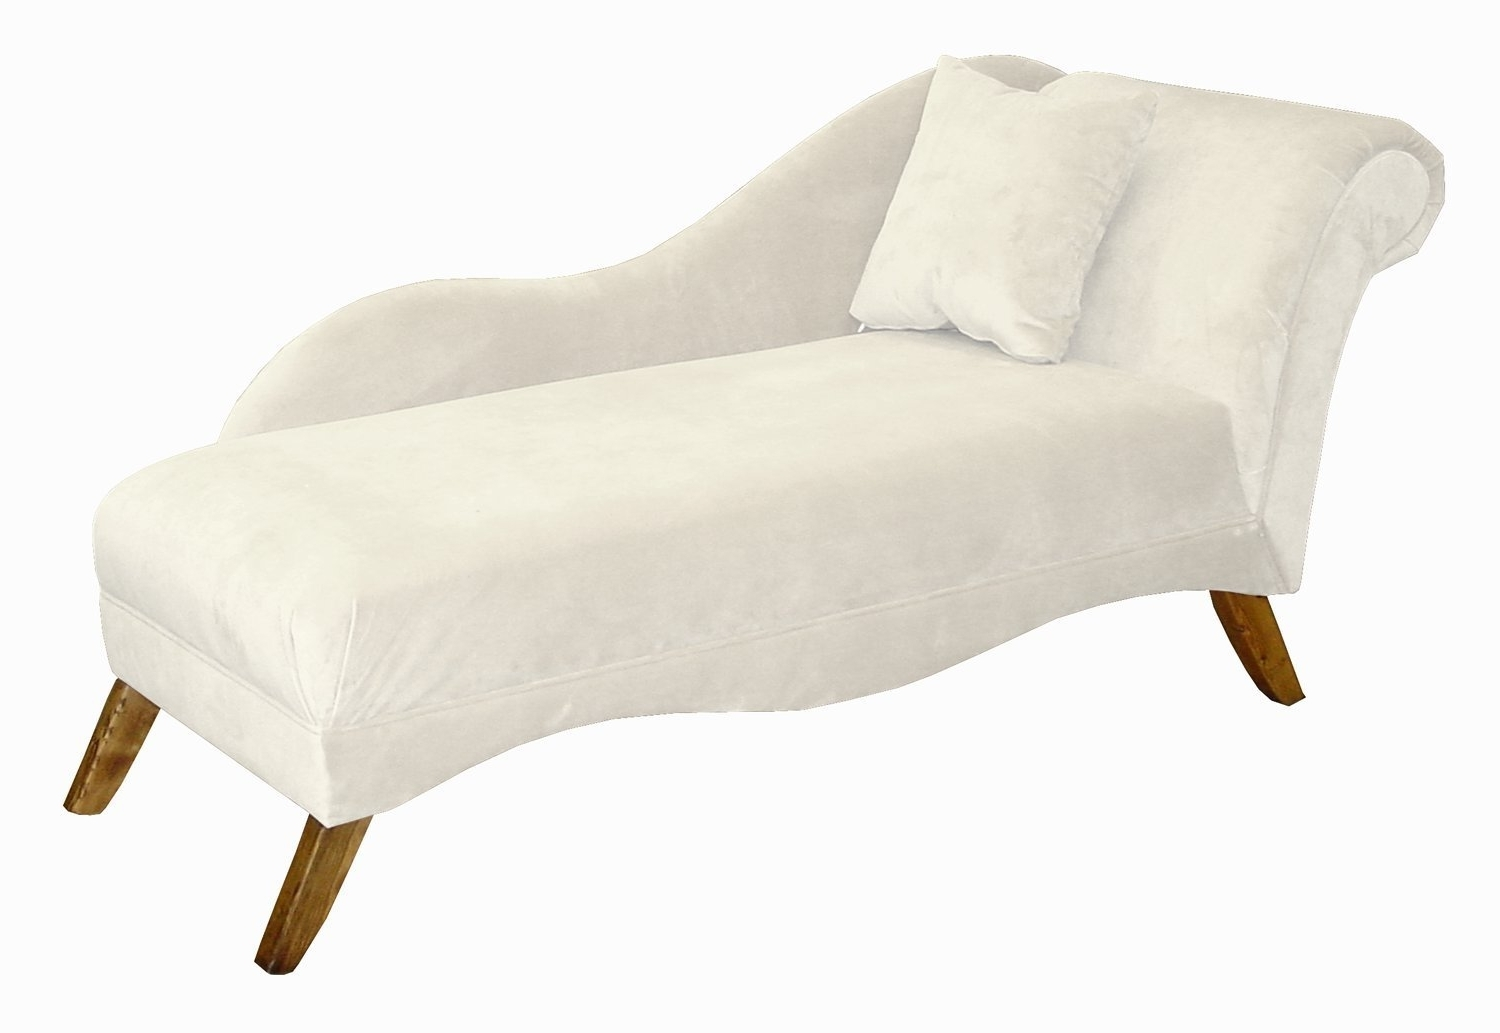 Popular Chaise Lounge Chairs Without Arms For Amazon: Isabella Single Arm Chaise Loungeskyline Furniture (View 12 of 15)